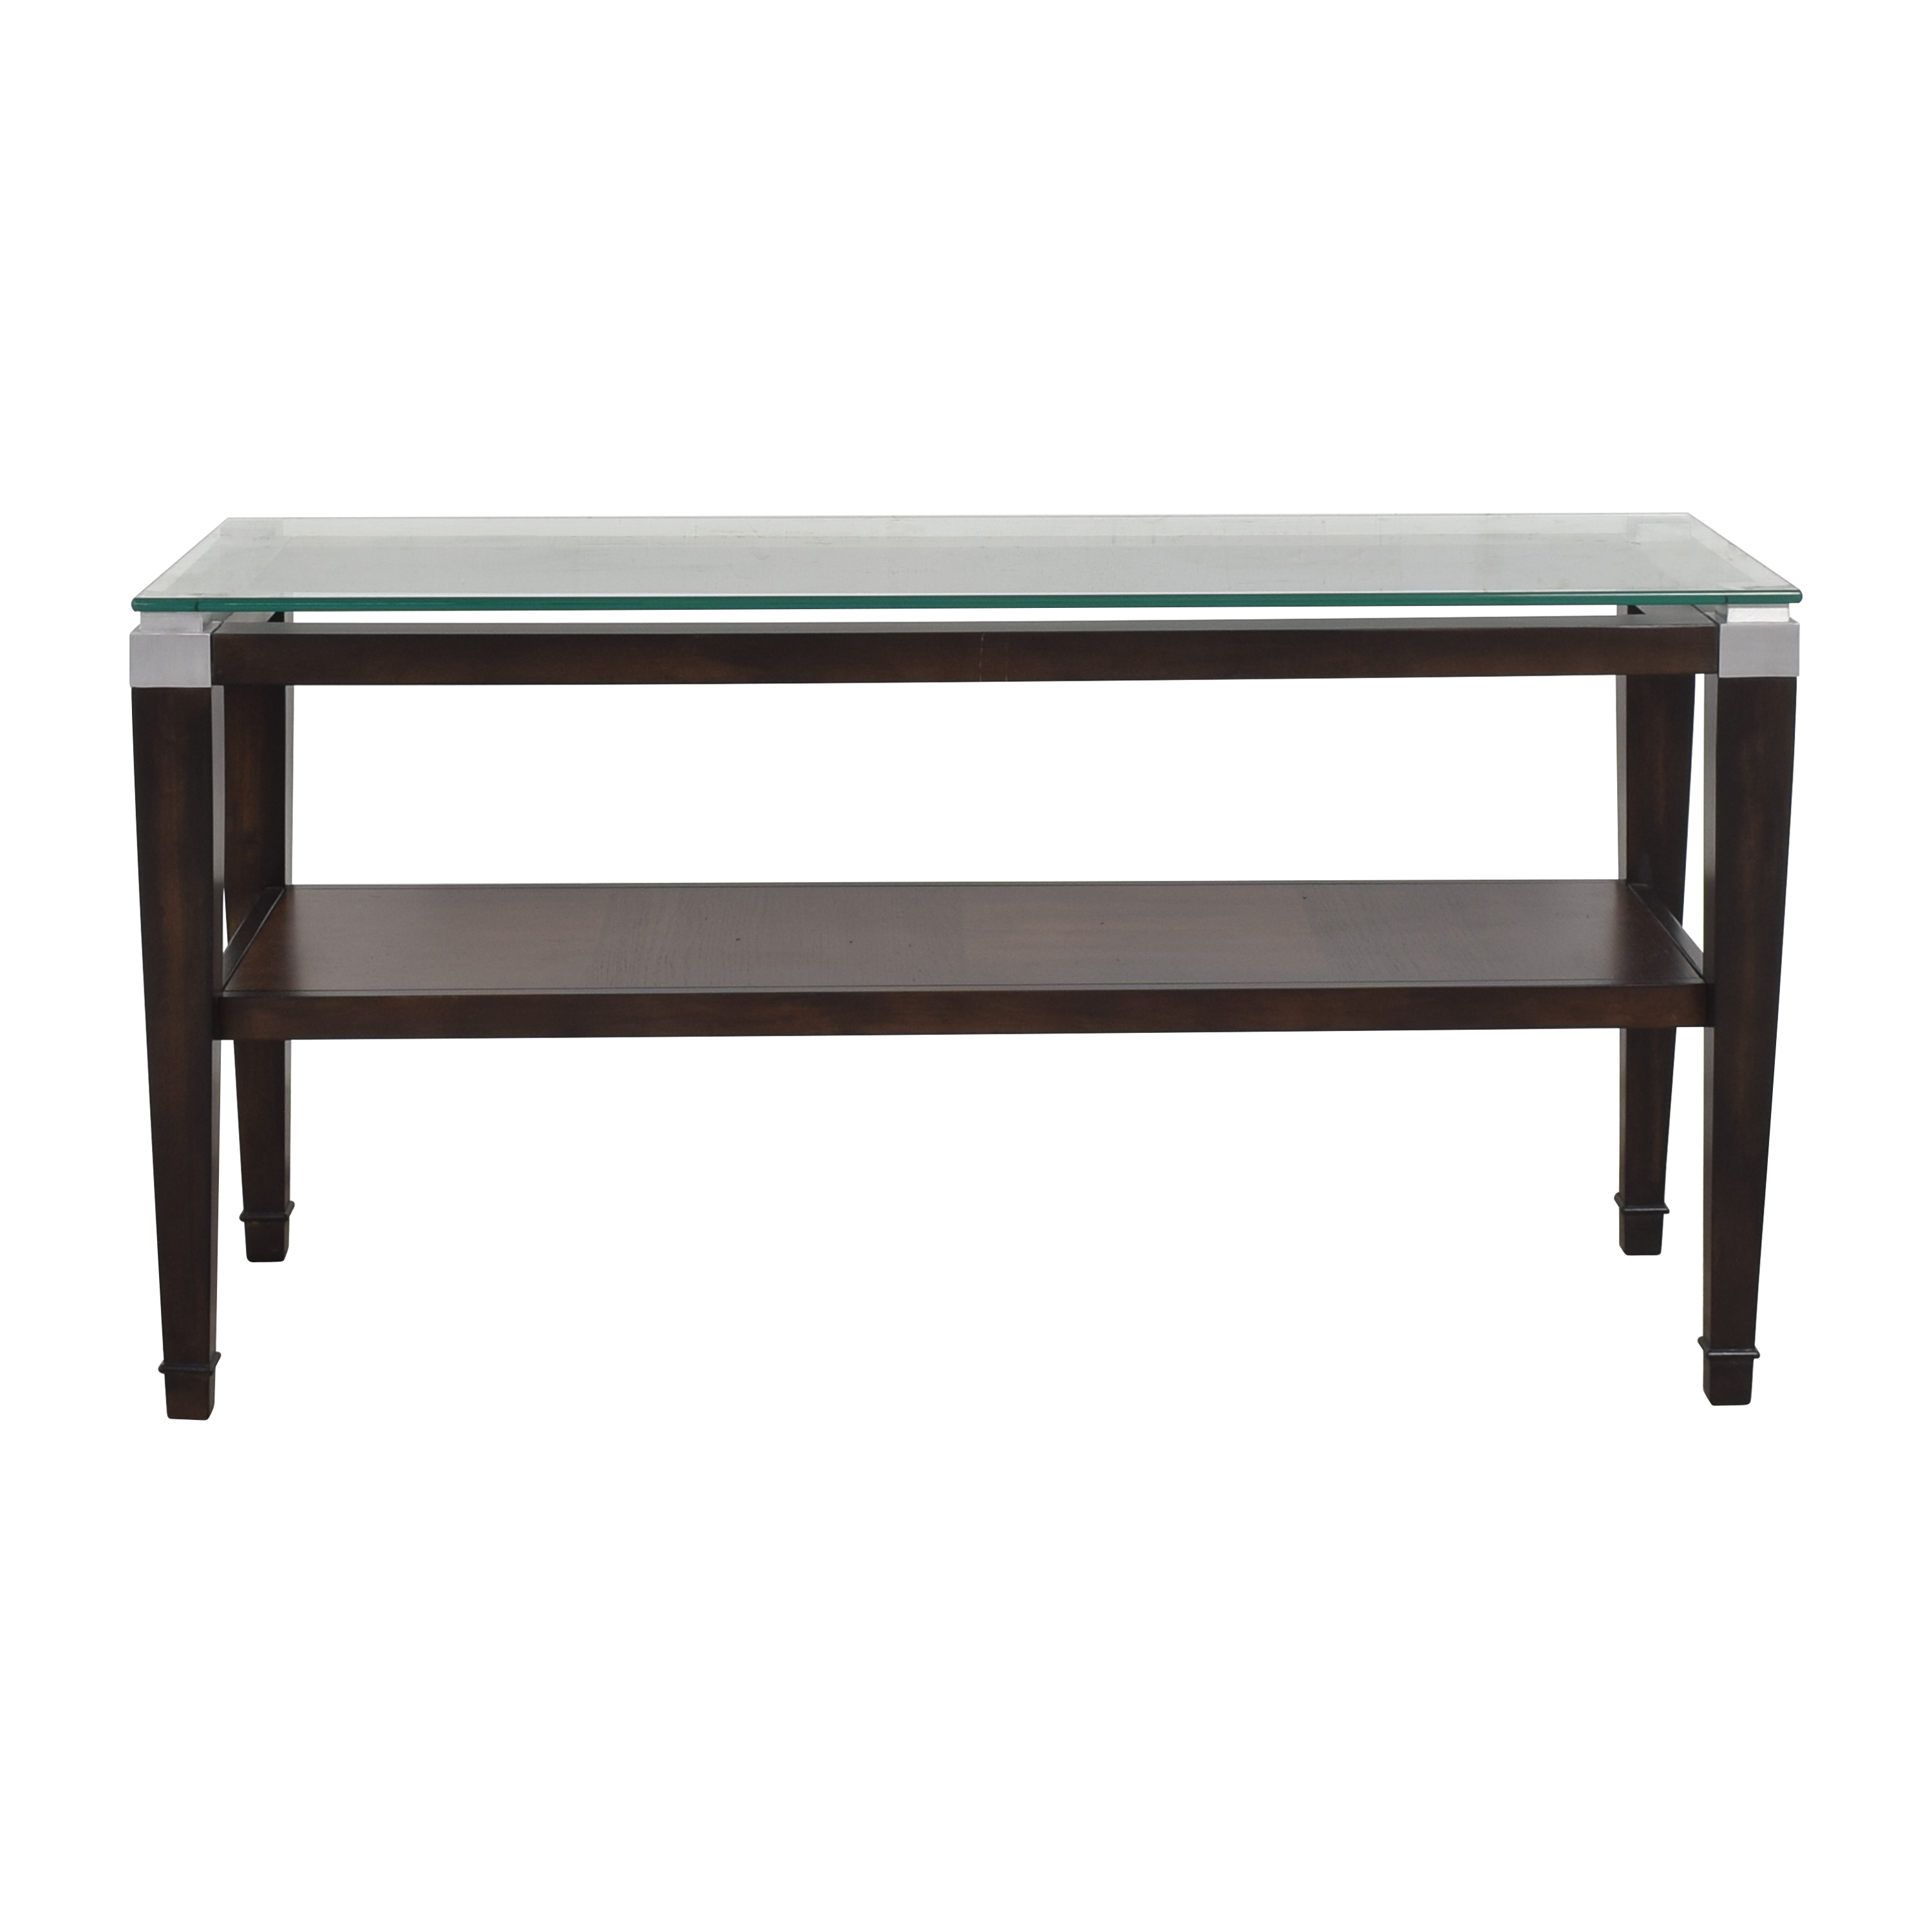 Raymour & Flanigan Raymour & Flanigan Dunhill Console Table coupon